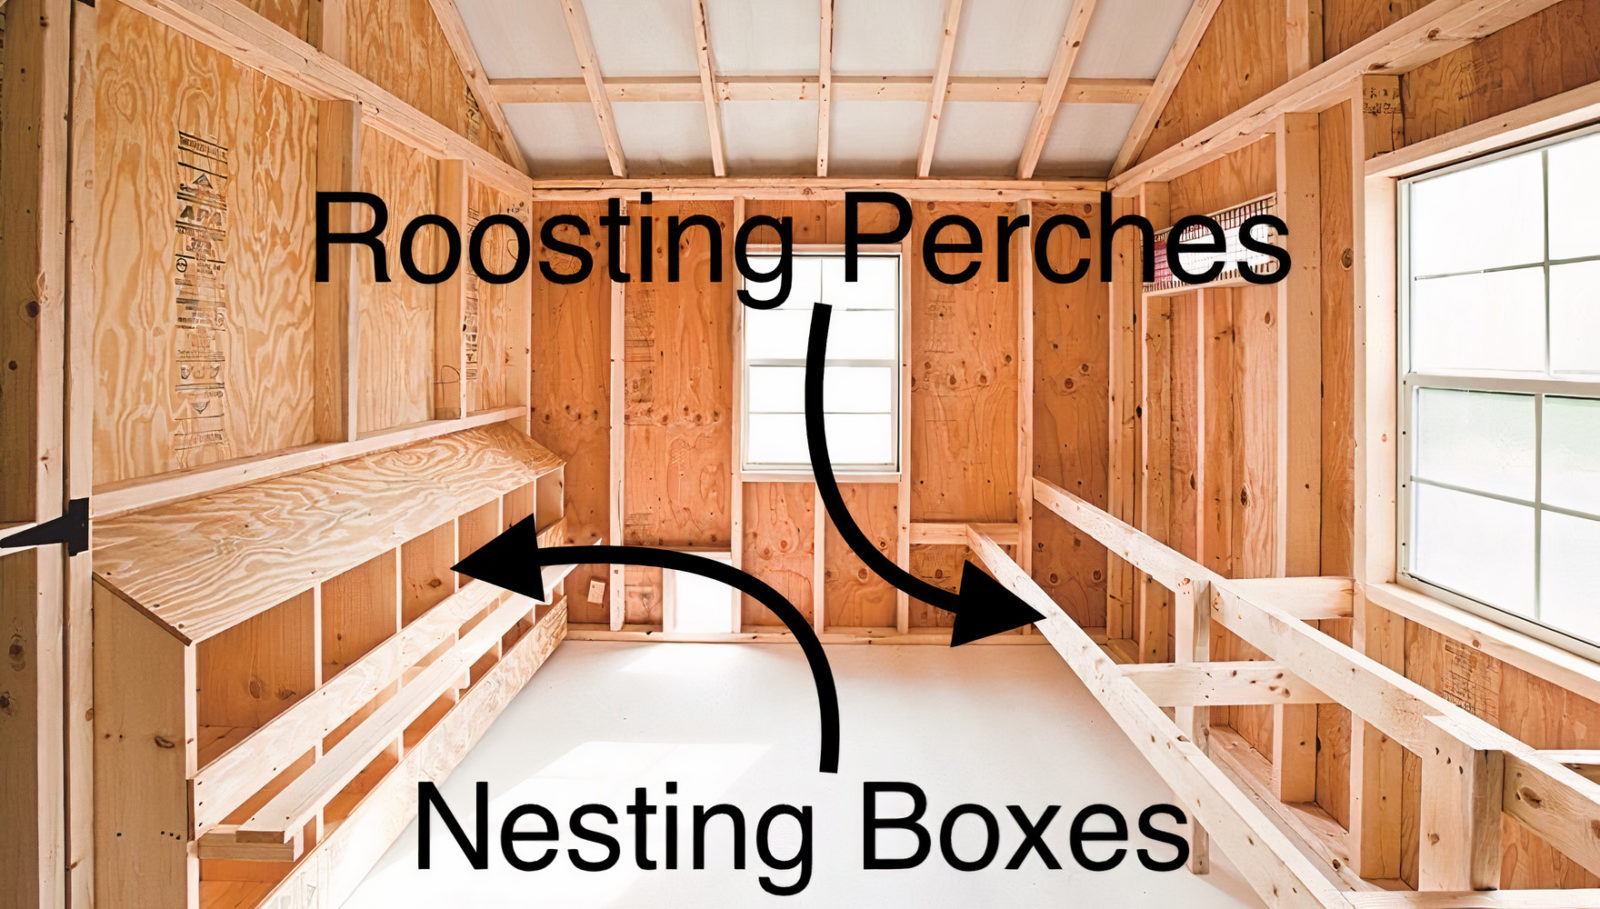 10x12 chicken coop nesting boxes and perch